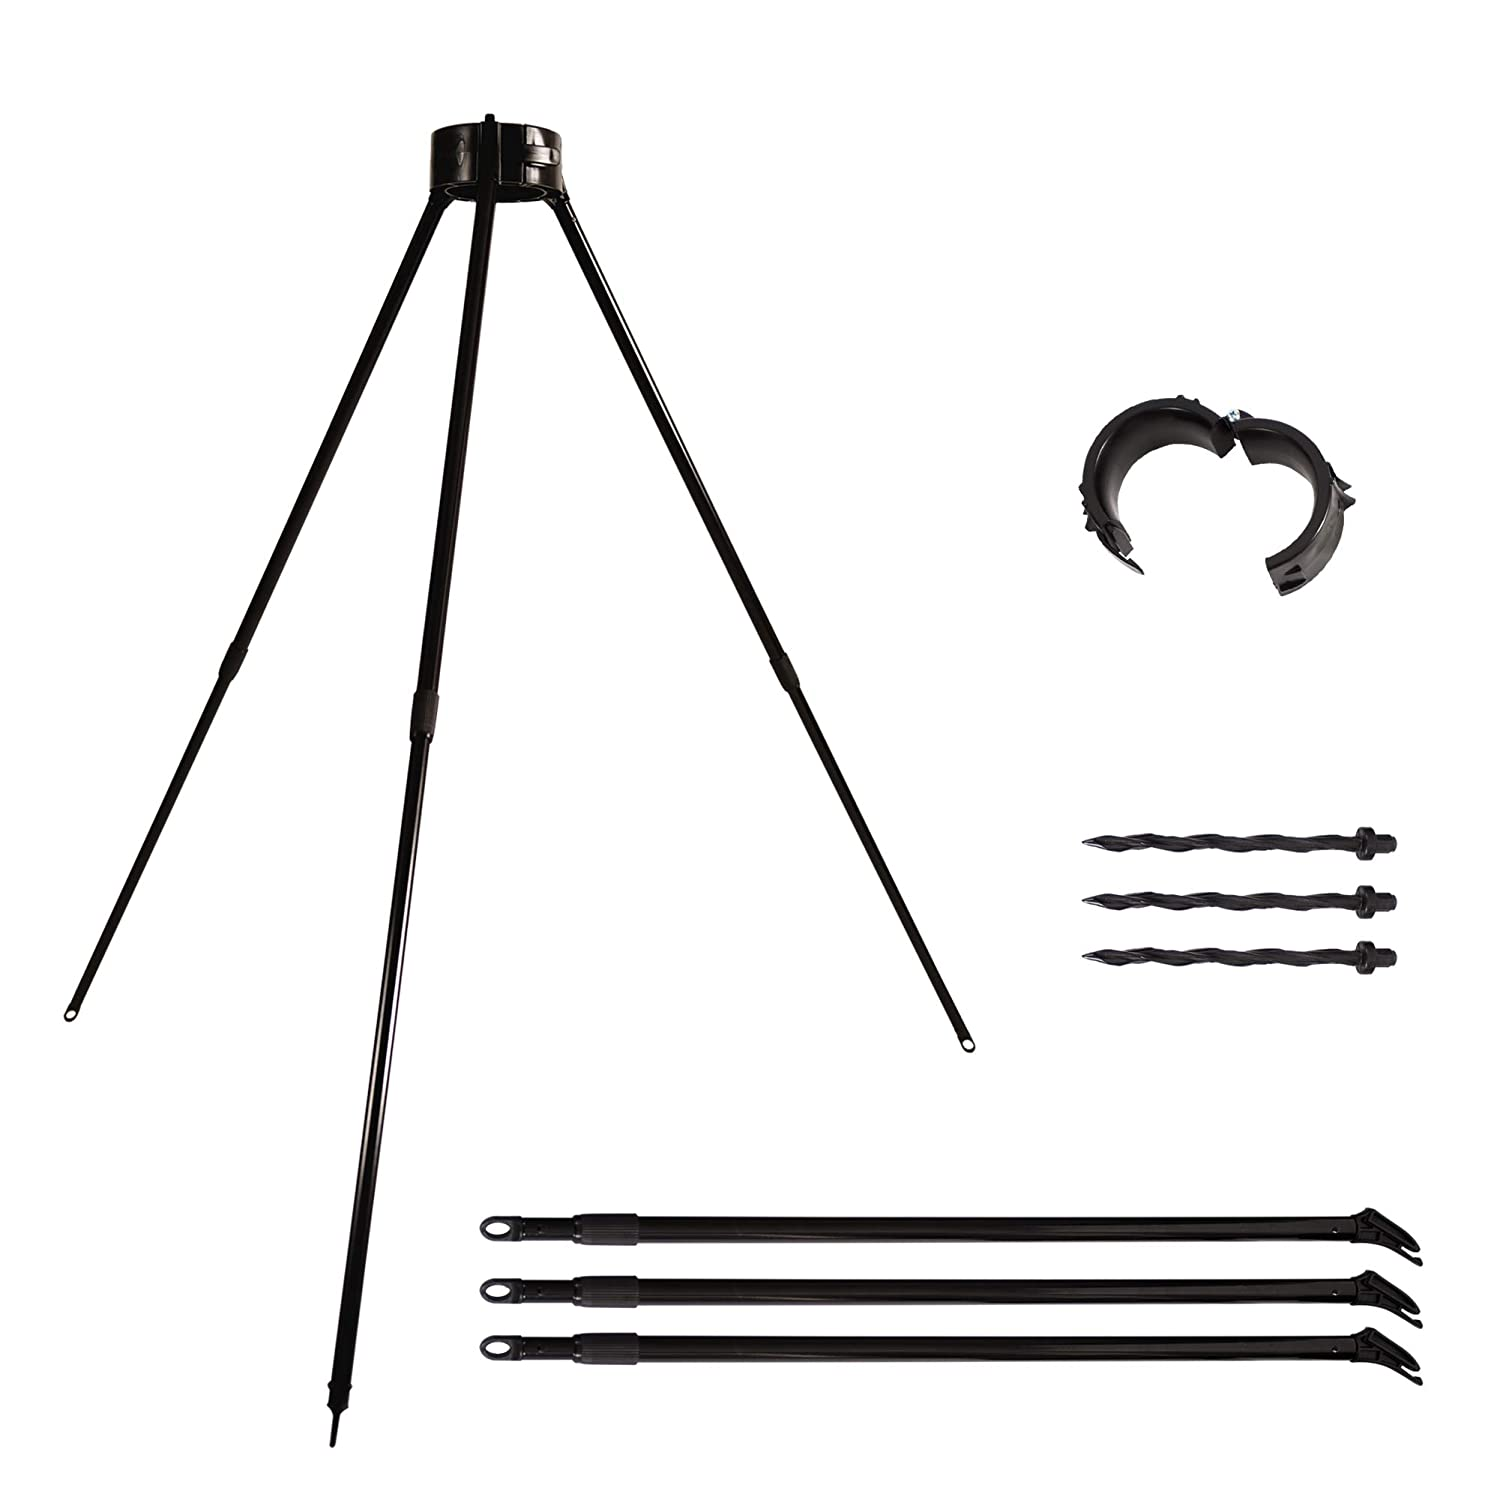 Kradl Tree Staking Kit   60 Second Assembly   Complete Tree Support Kit for The Best Stem Growth   Heavy Duty, Non-intrusive to Stimulate Root Growth